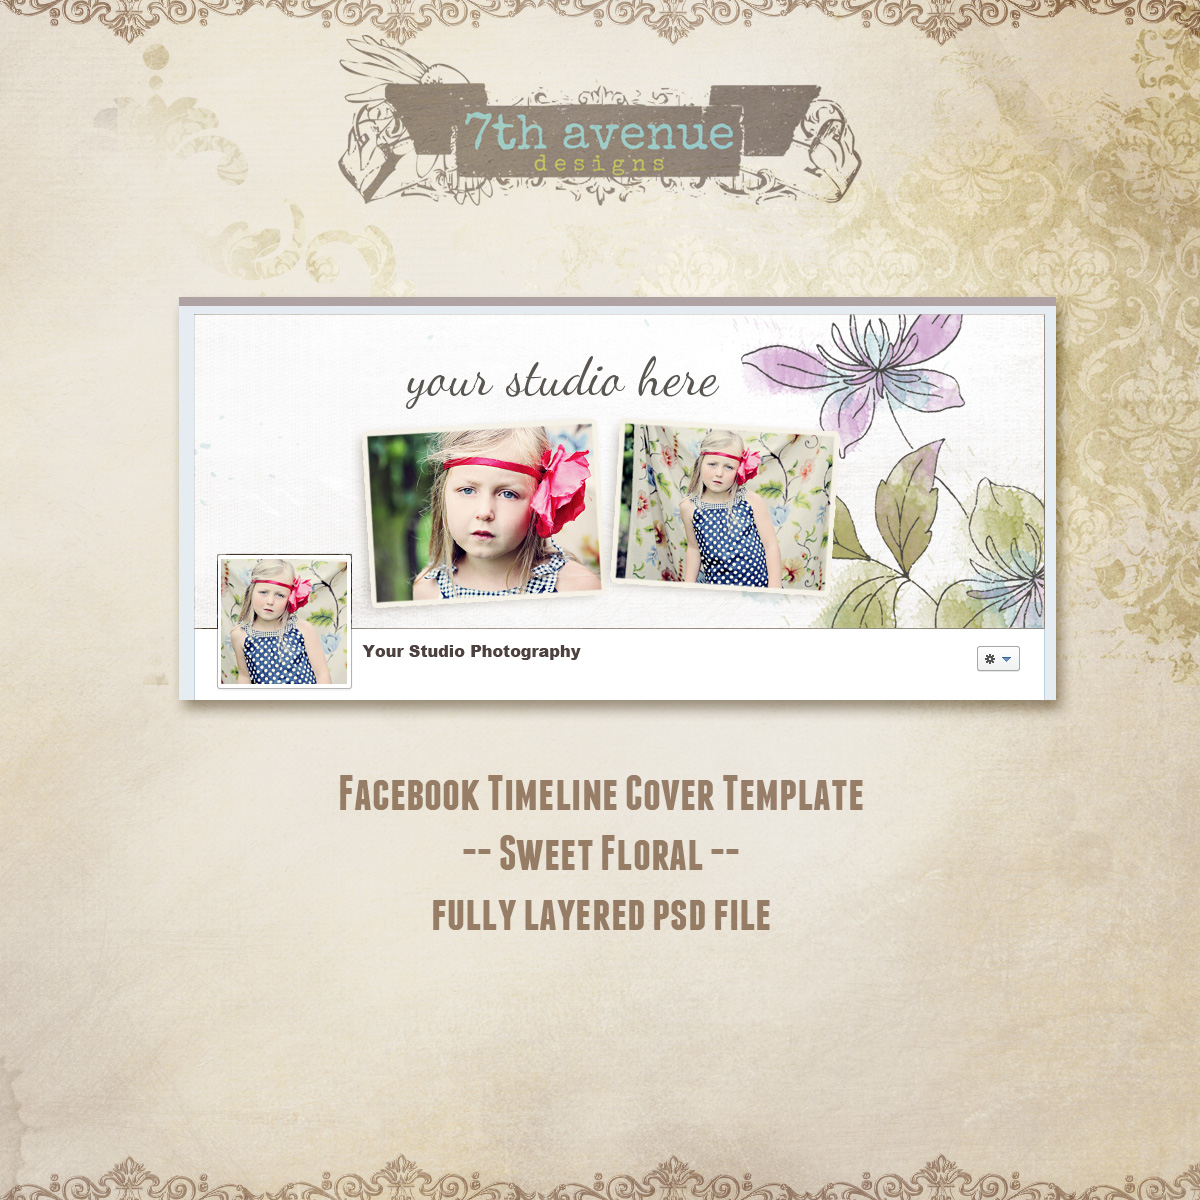 Facebook Timeline Cover - Sweet Floral